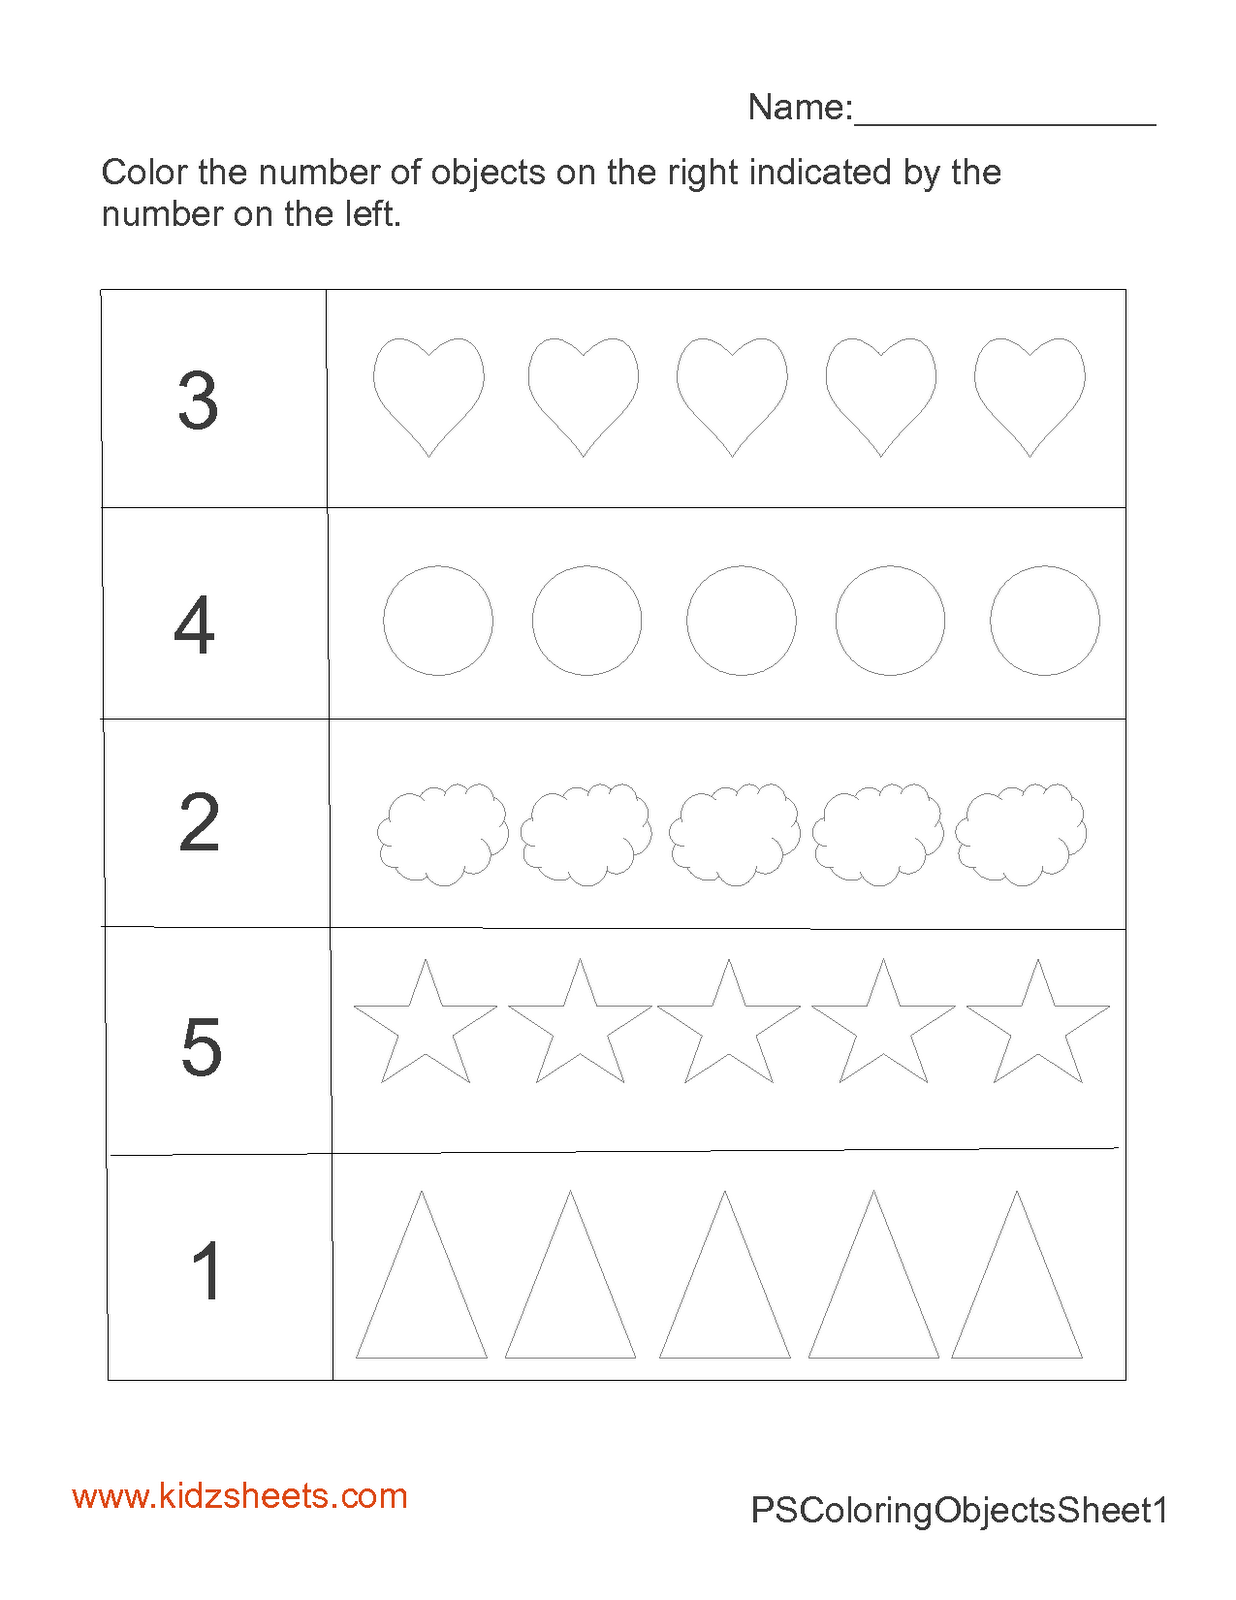 Kidz Worksheets Preschool Count Amp Color Worksheet1